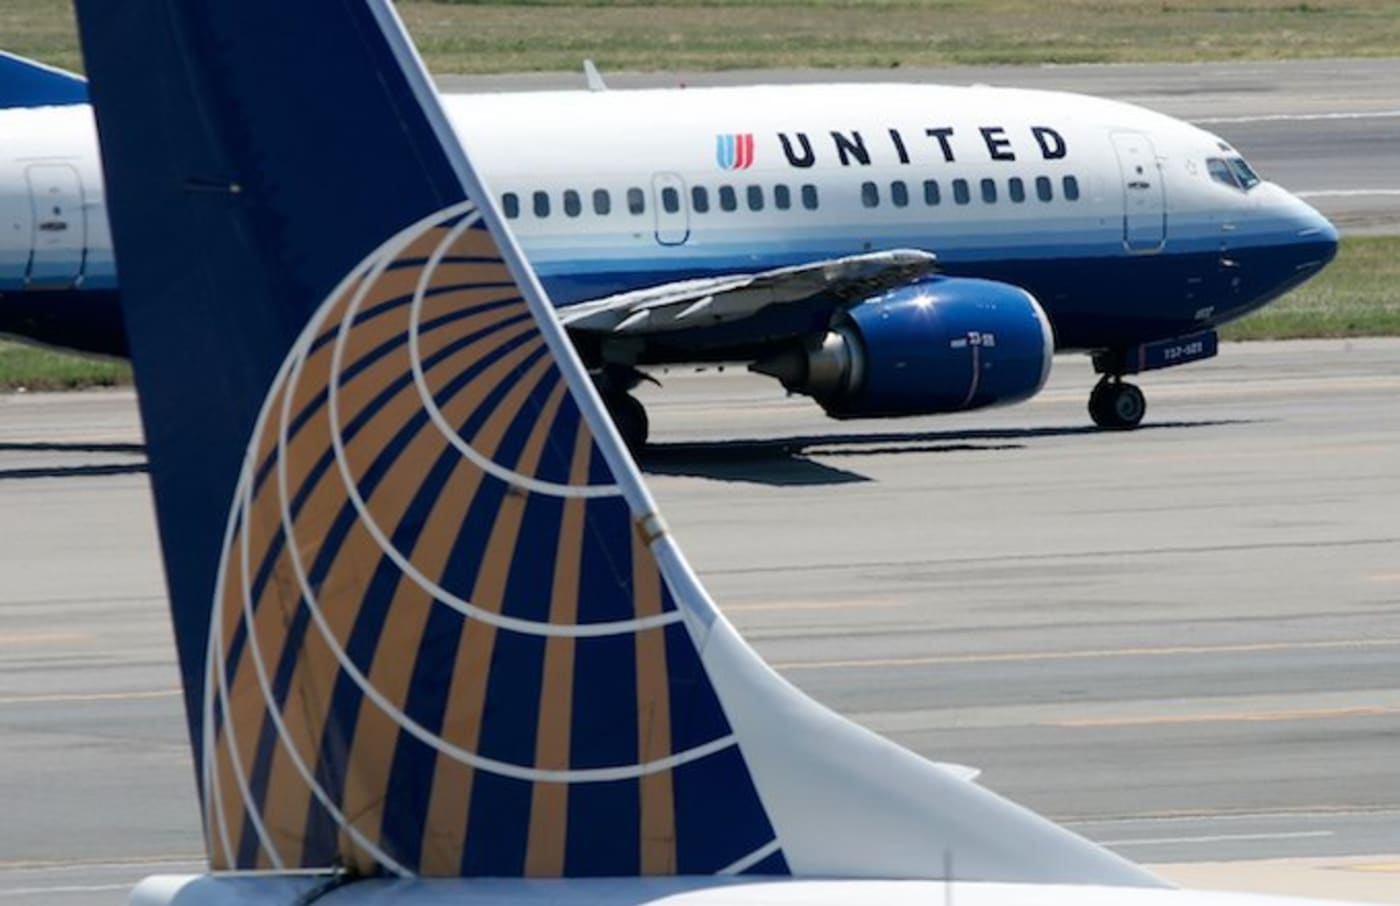 A United Airlines airplane.